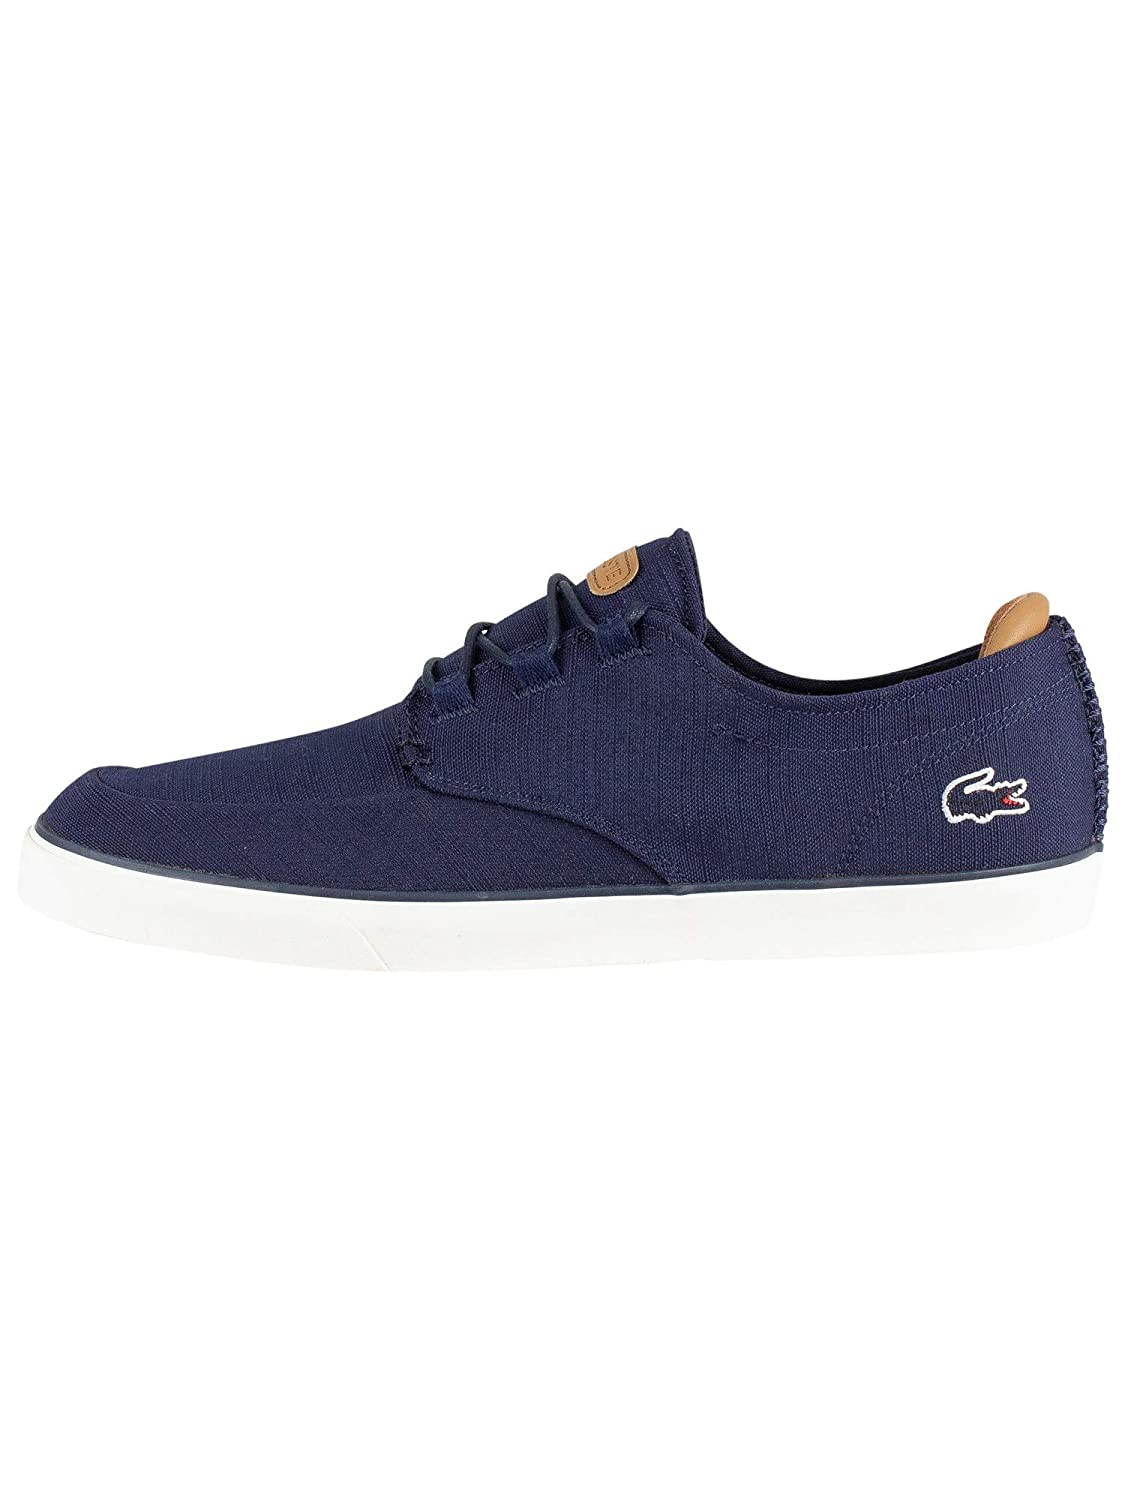 Lacoste Men/'s Ortholite Esparre Deck 119 In Navy LT Brown